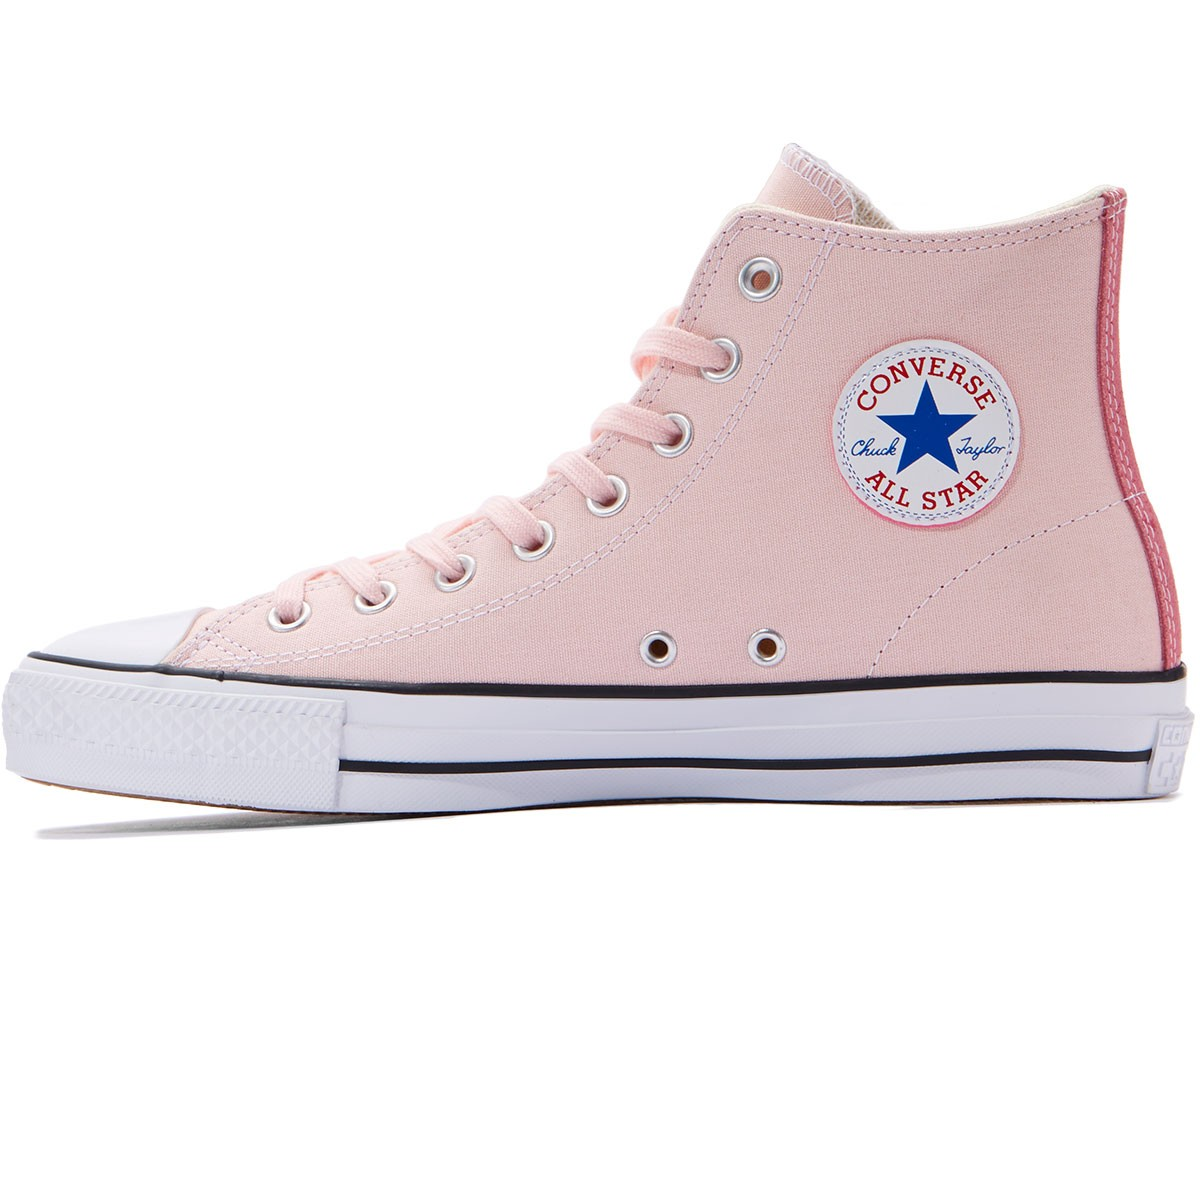 Converse Suede Backed Canvas Skate Shoe